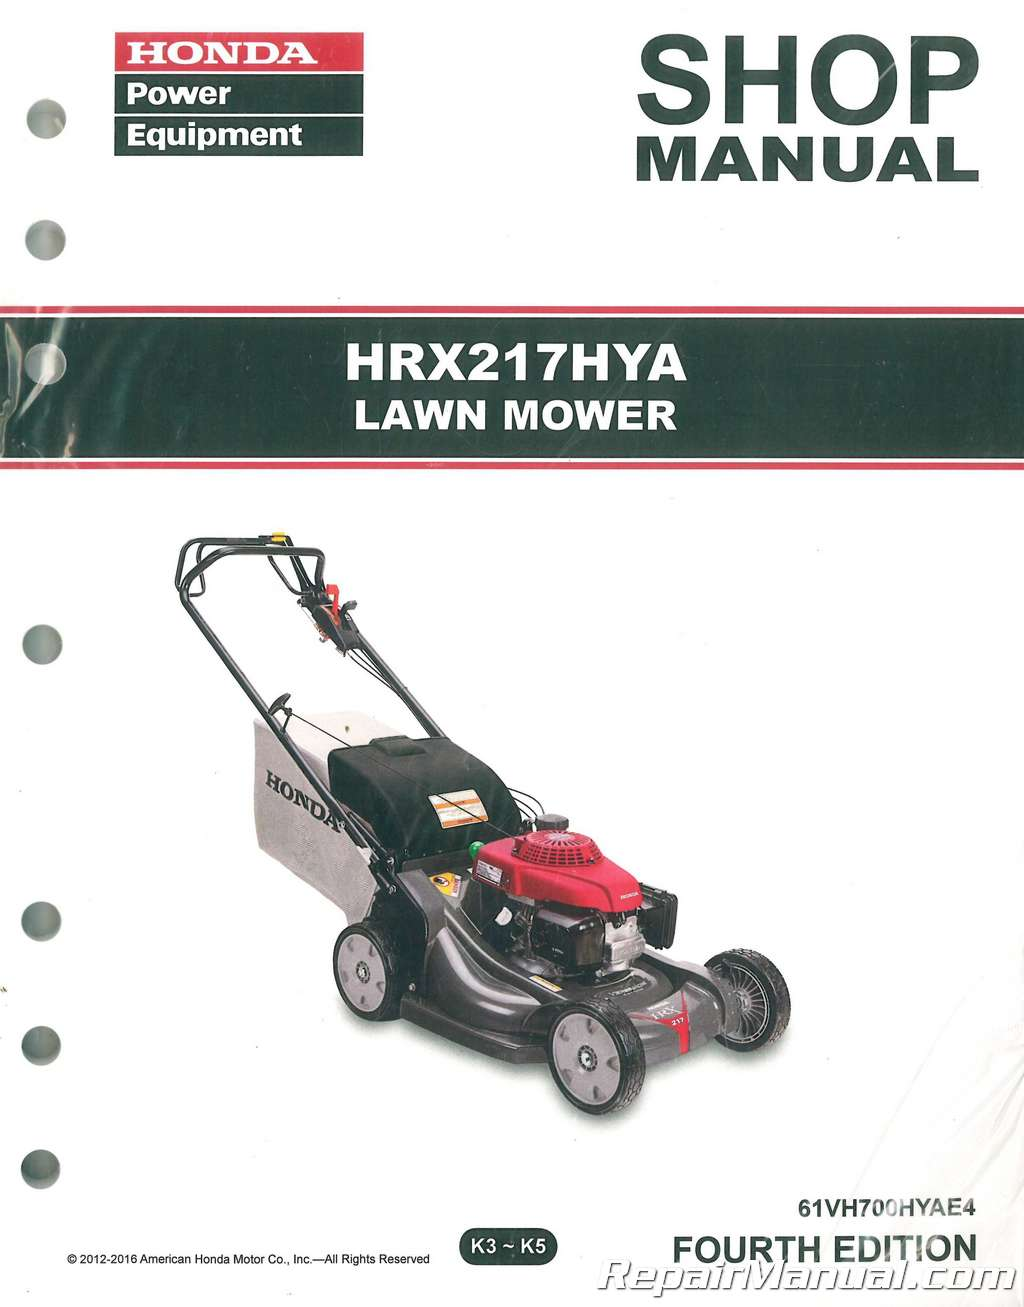 Honda Hrx217 Hya Lawn Mower Repair Service Shop Manual Parts Diagram